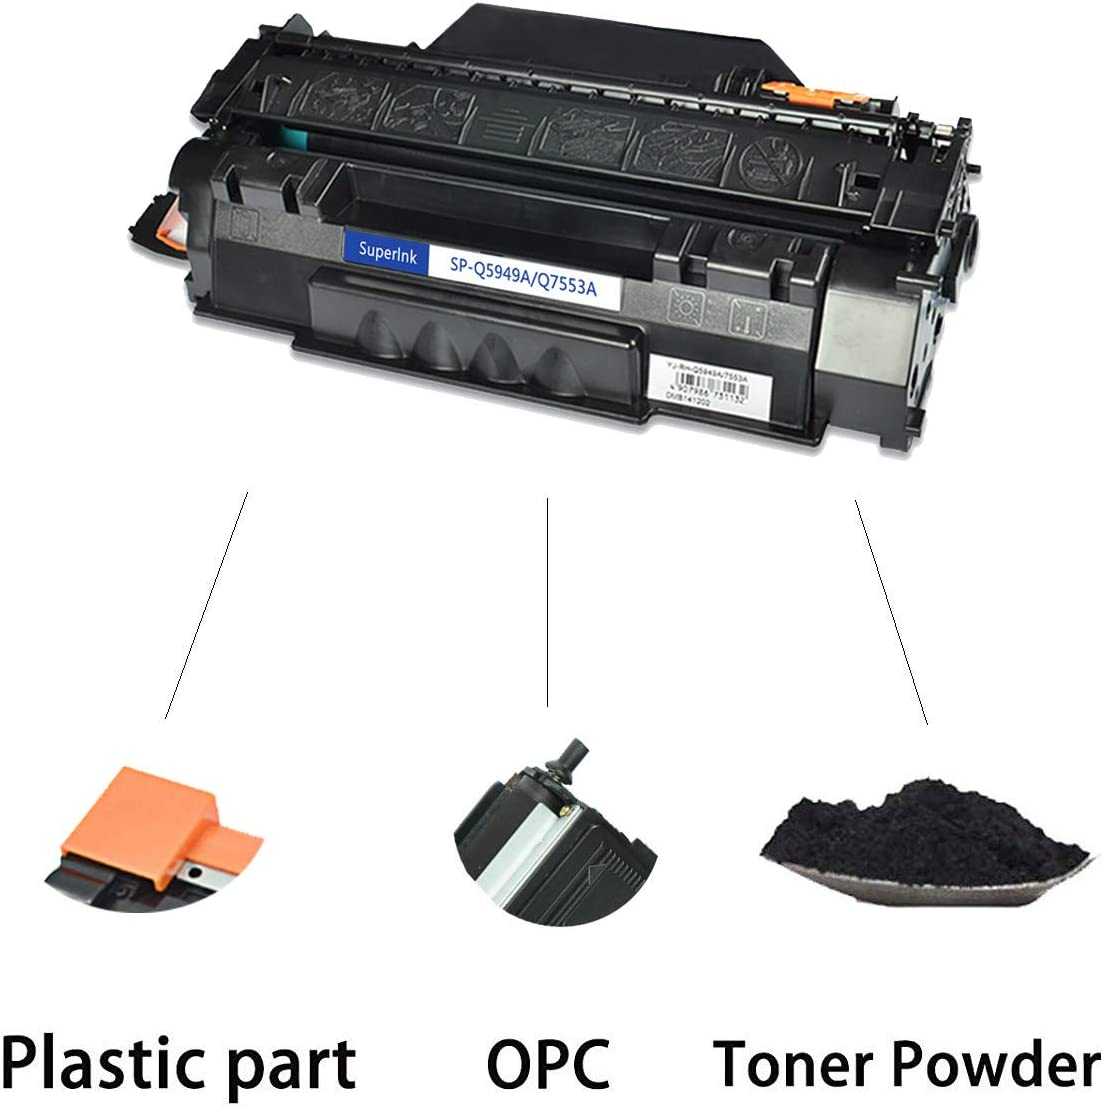 Black, 2-Pack SuperInk Compatible Toner Cartridge Replacement for HP 53A Q7553A to use with Laserjet P2015 P2015d P2015dn P2015x M2727 M2727nf M2727nfs MFP